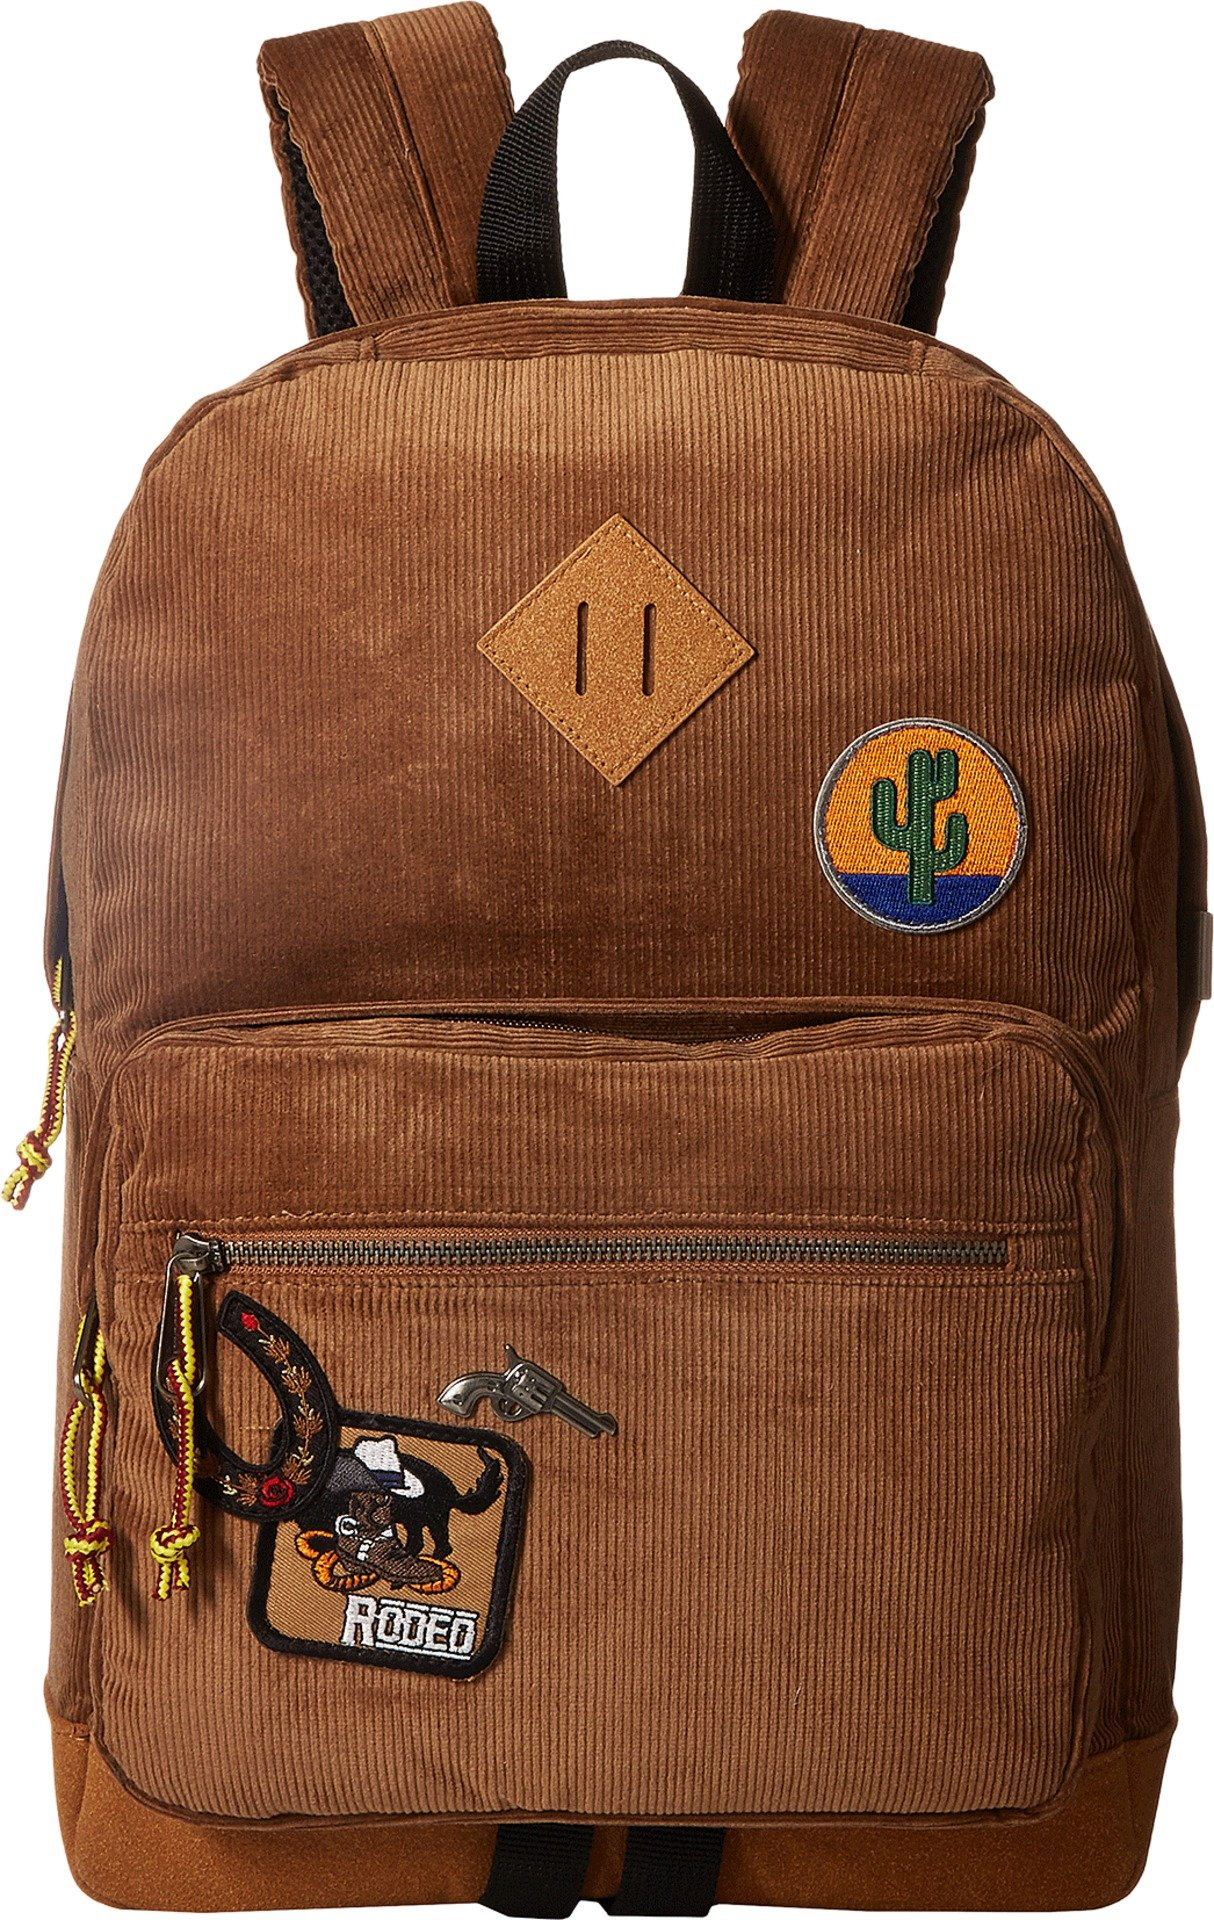 Steve Madden Women's Corduroy Classic Backpack with Patches Cognac One Size